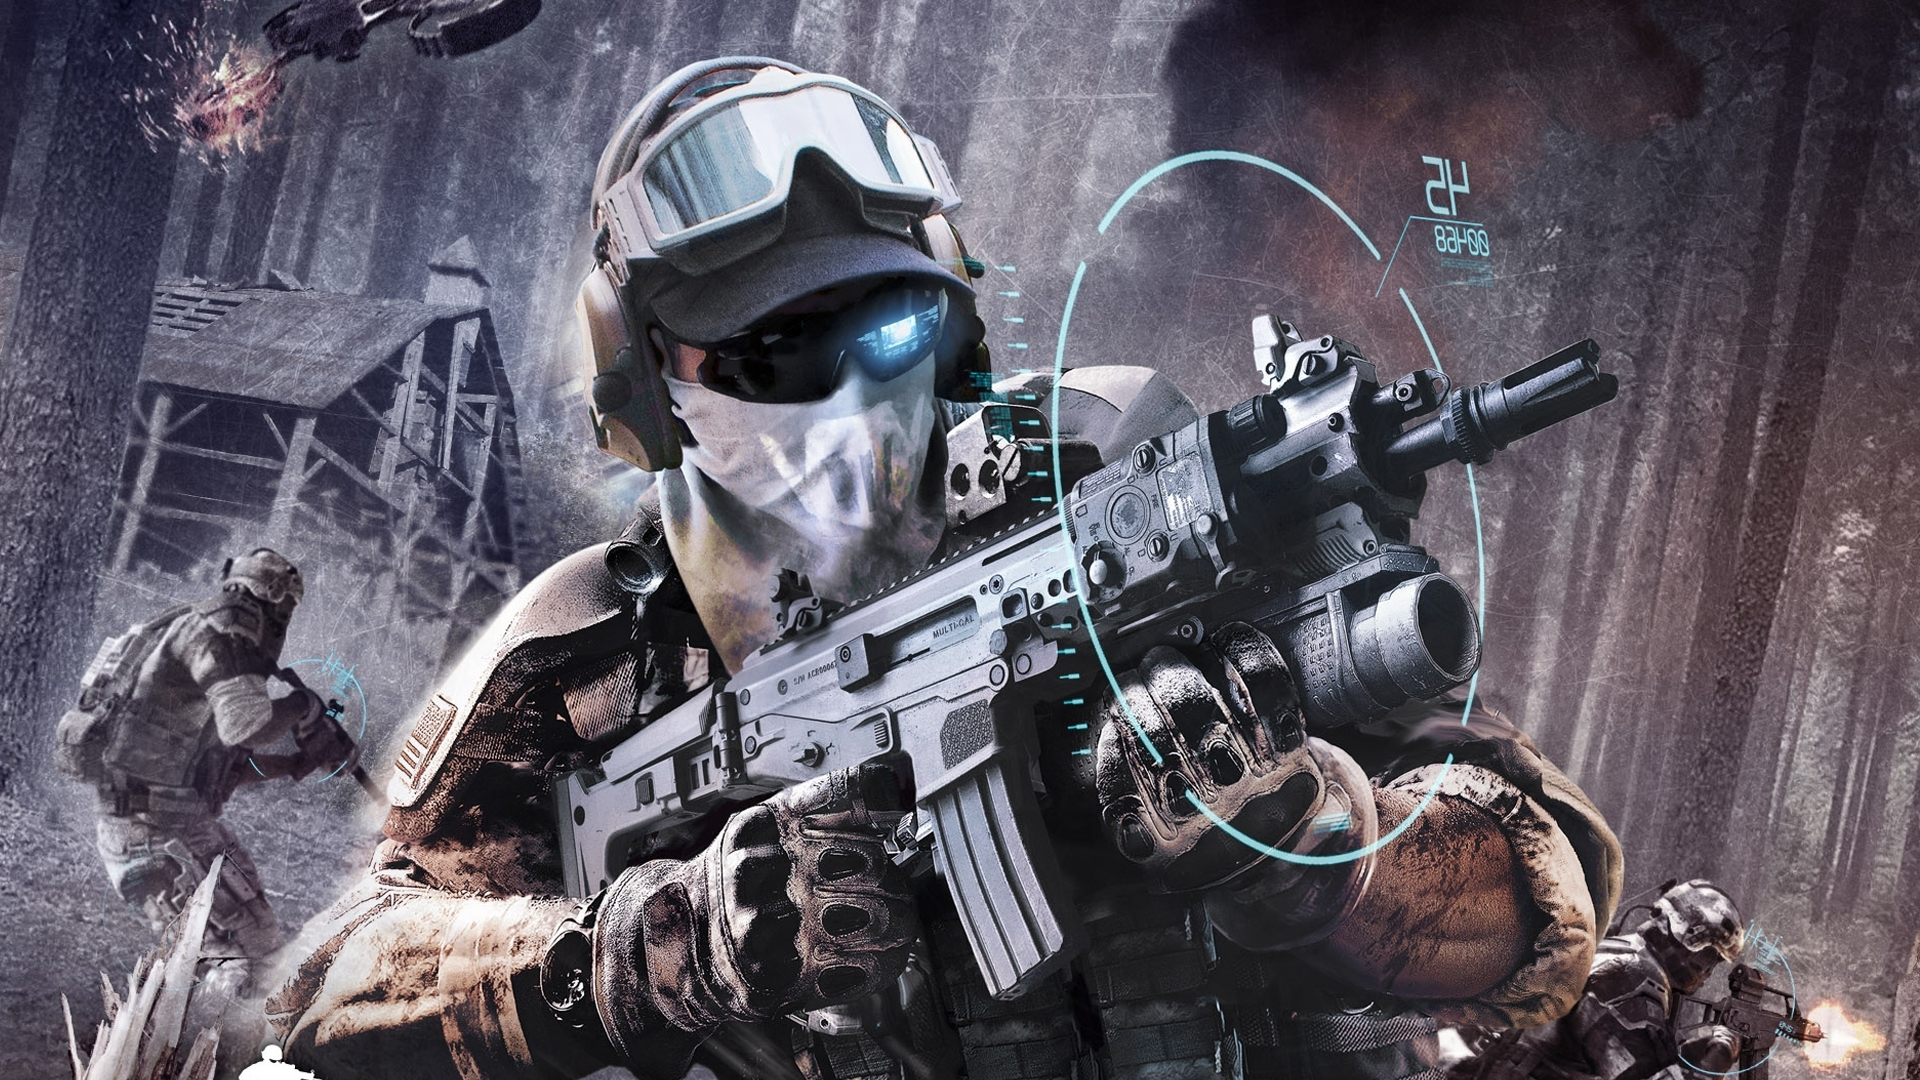 tom clancy's ghost recon: future soldier full hd fond d'écran and